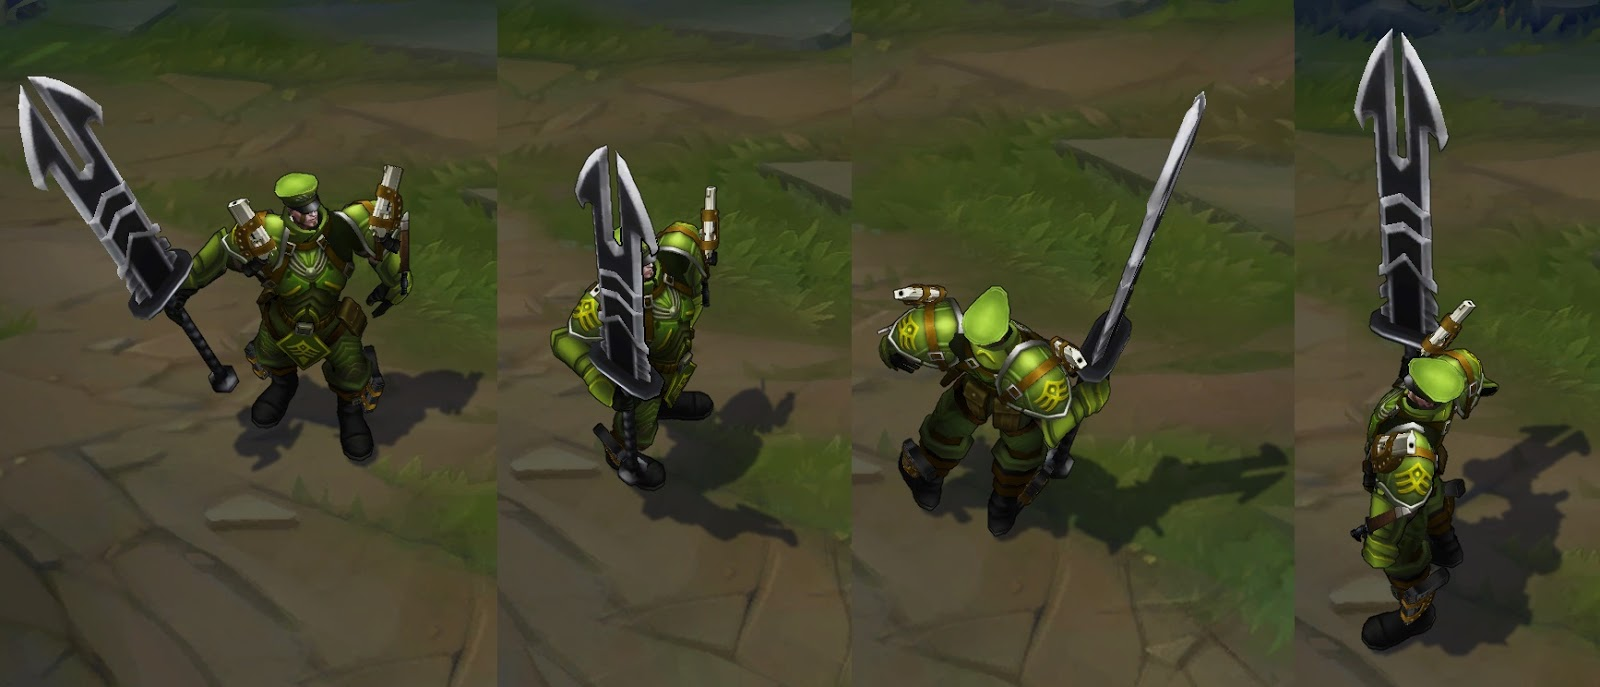 Surrender at 20: Champion and Skin - 122.0KB